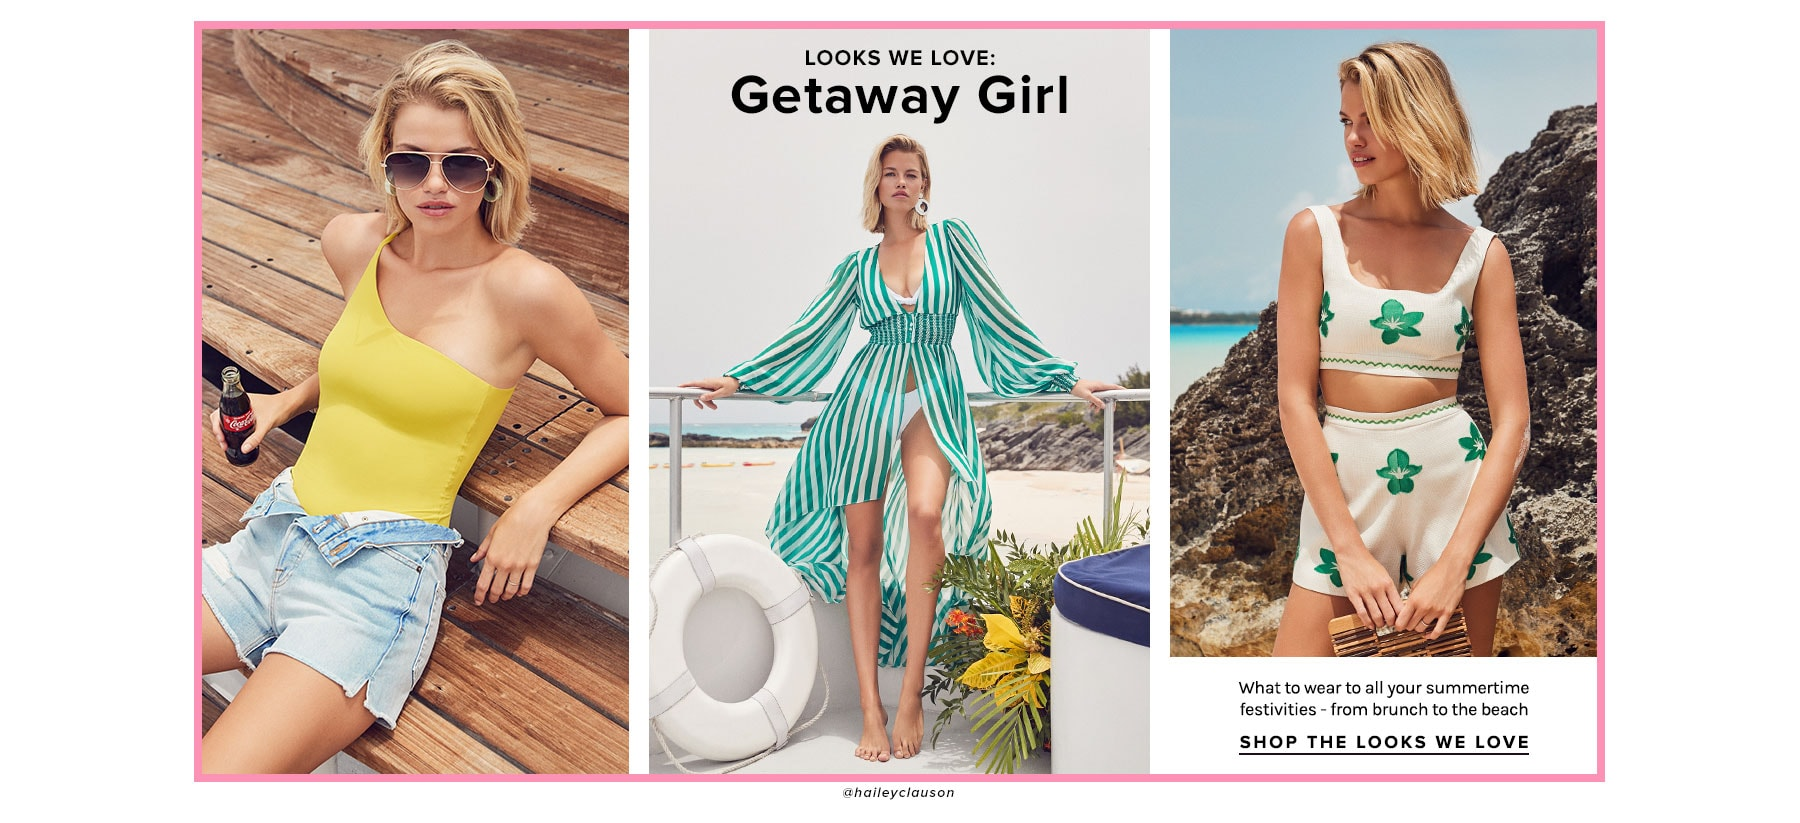 Looks We Love: Getaway Girl. What to wear to all your summertime festivities - from brunch to the beach. Shop the Looks We Love.